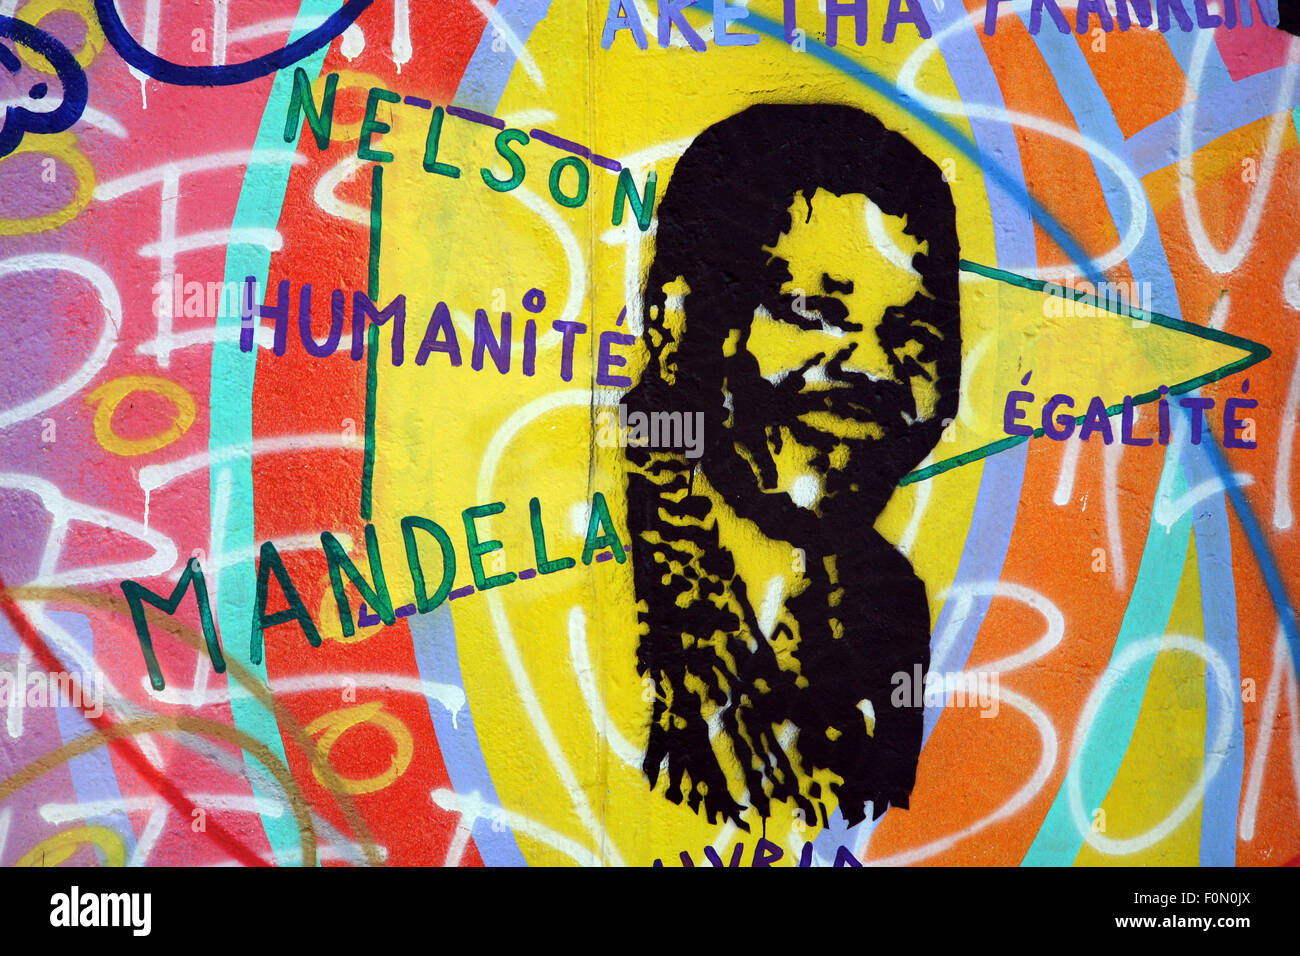 Details Of Painting On The Berlin Wall With The Name Of Mandela And